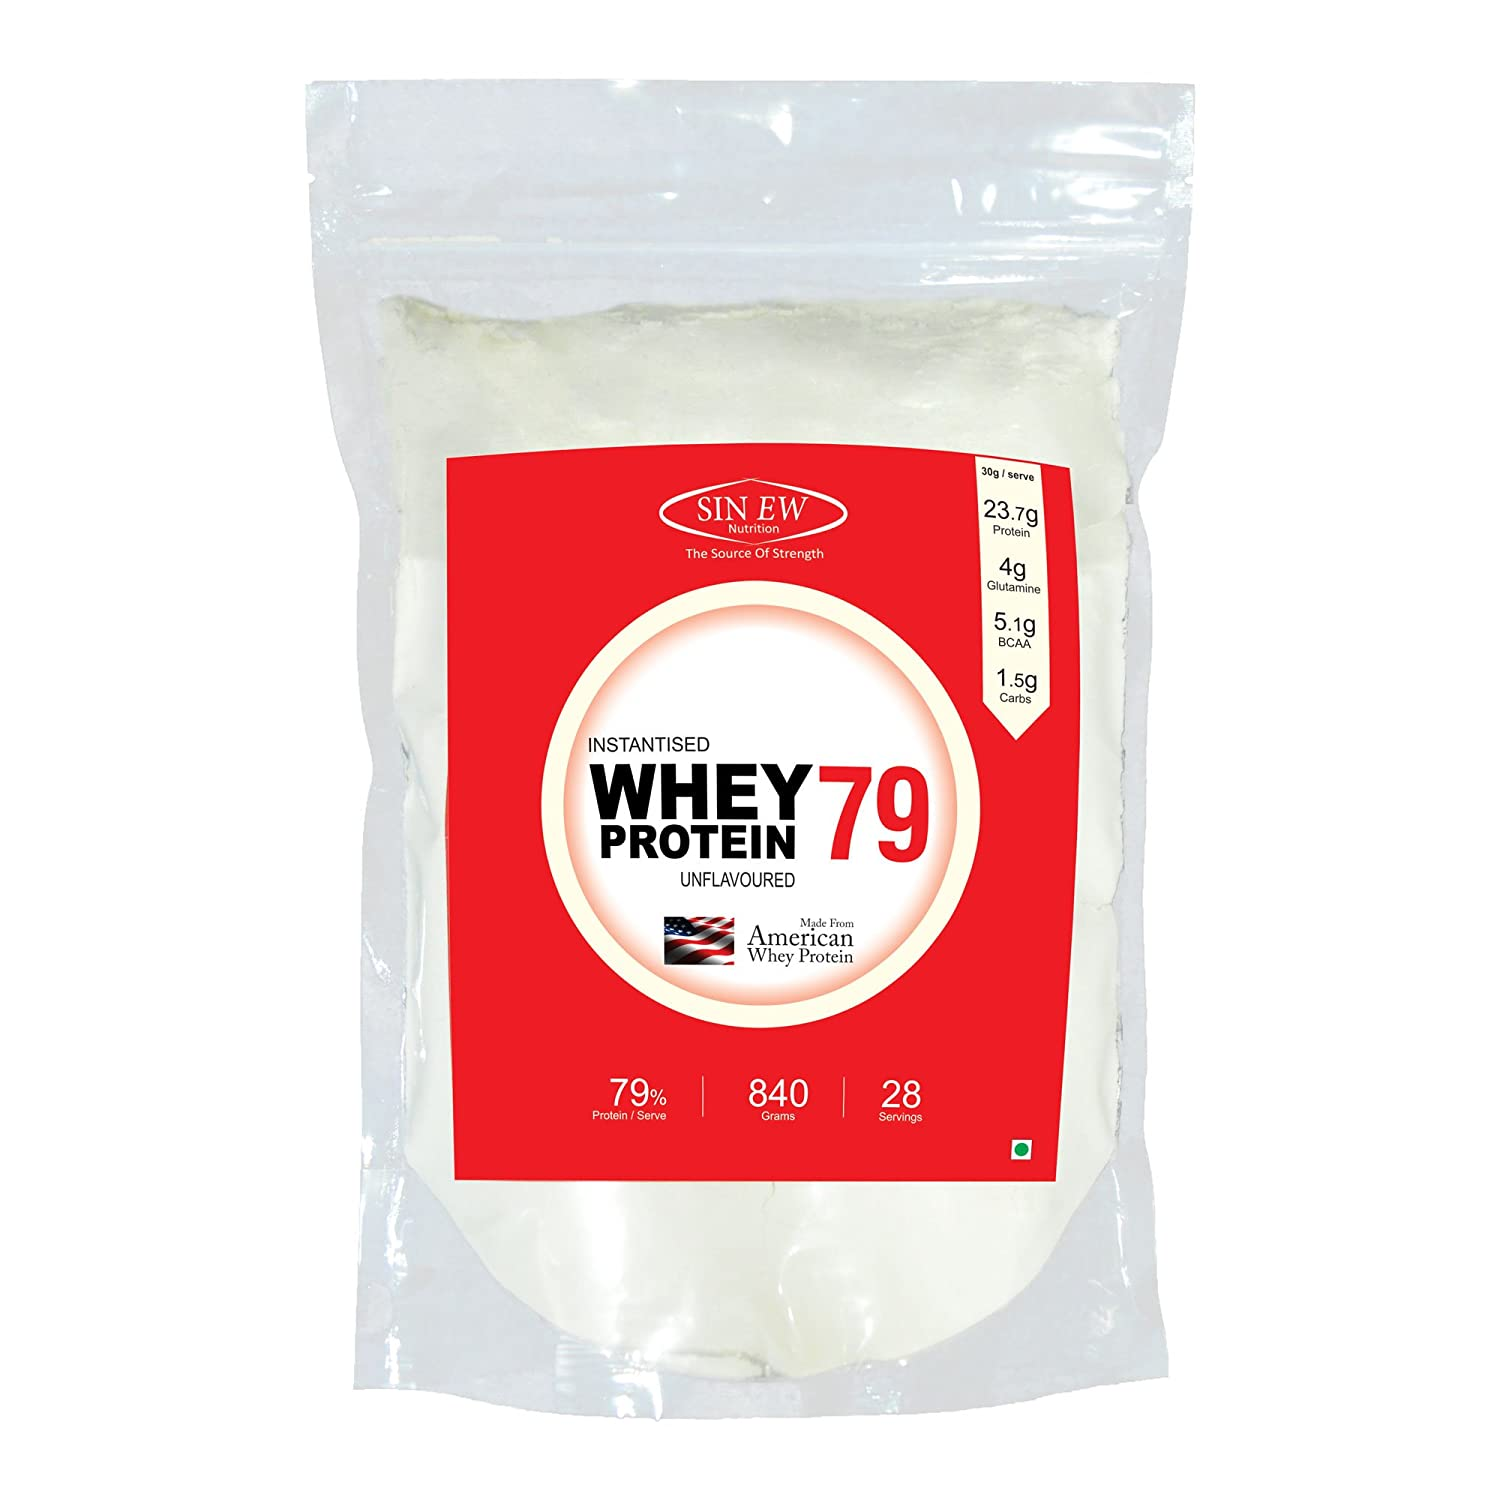 Sinew Nutrition Raw Whey Protein Concentrate 79%, 840 g (Unflavoured)